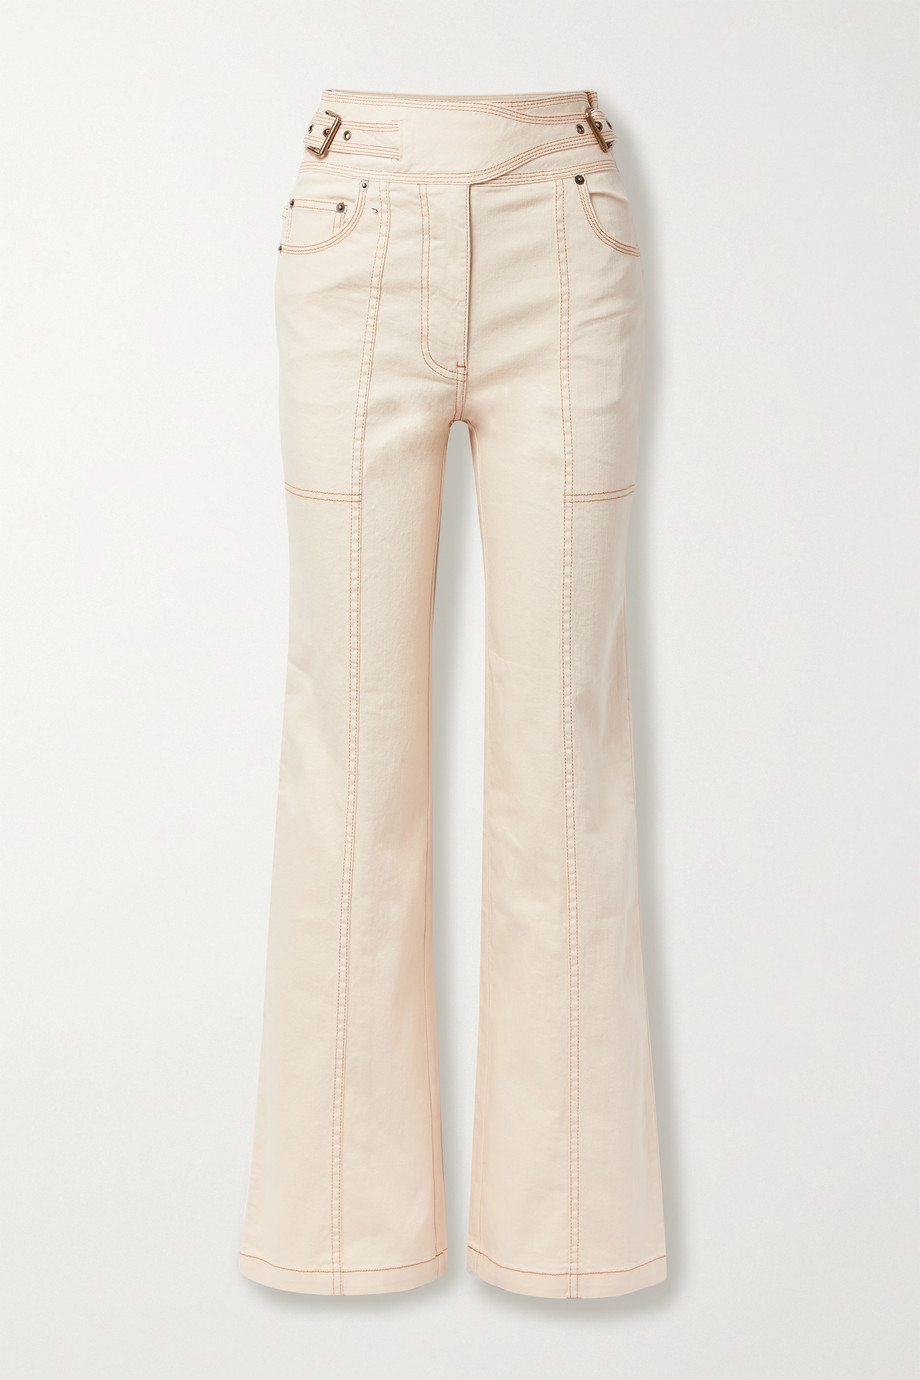 ULLA JOHNSON Albie belted high-rise wide-leg denim jeans